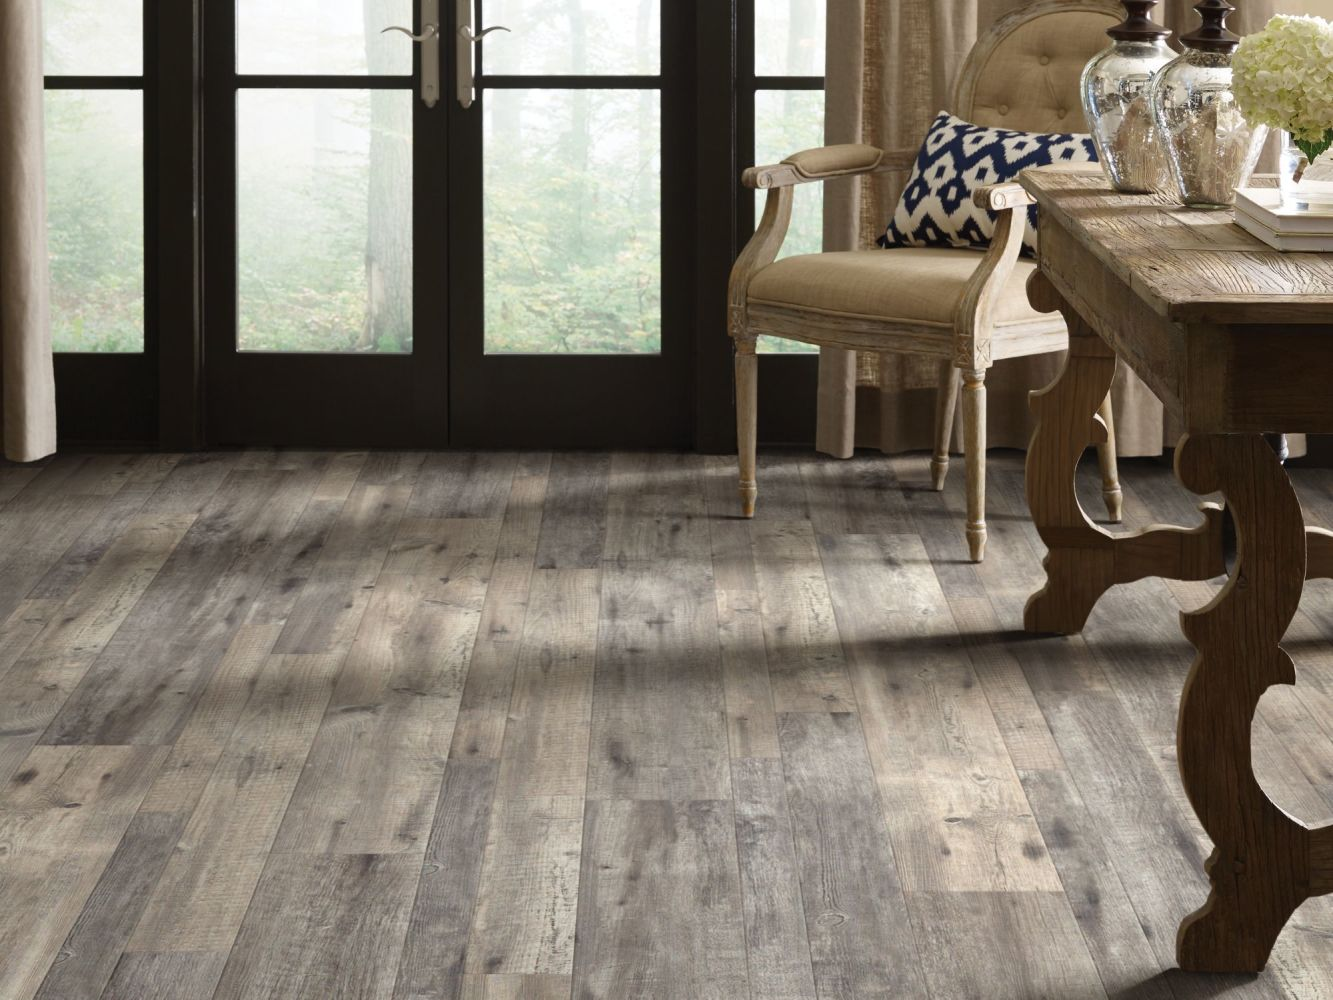 Shaw Floors Resilient Home Foundations Tapestry Mix Plus Veneto Pine 00539_507RG